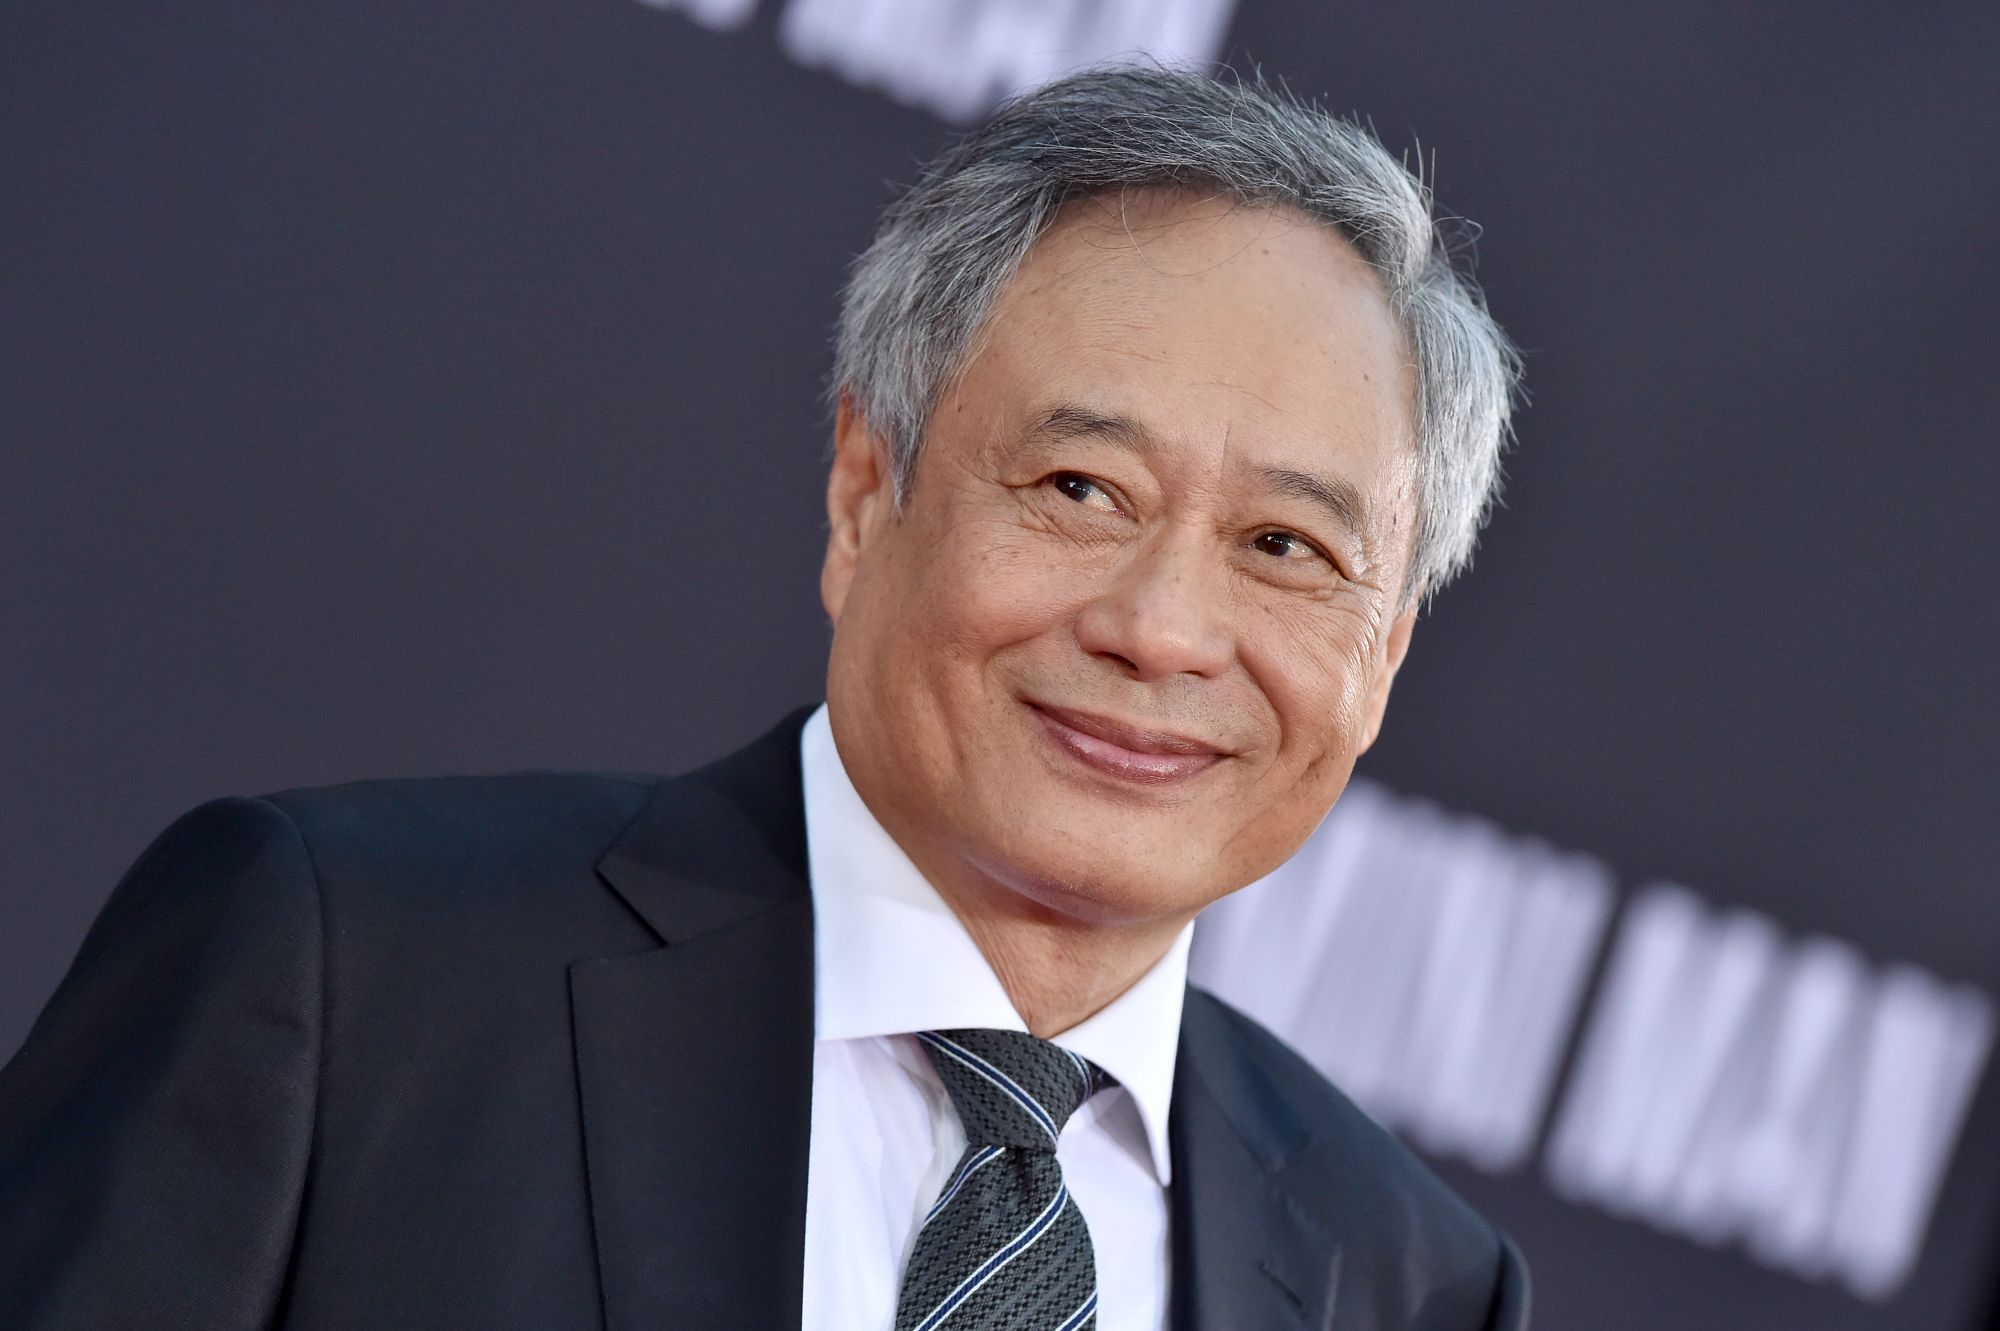 """HOLLYWOOD, CALIFORNIA - OCTOBER 06: Ang Lee attends Paramount Pictures' Premiere of """"Gemini Man"""" on October 06, 2019 in Hollywood, California. (Photo by Axelle/Bauer-Griffin/FilmMagic)"""